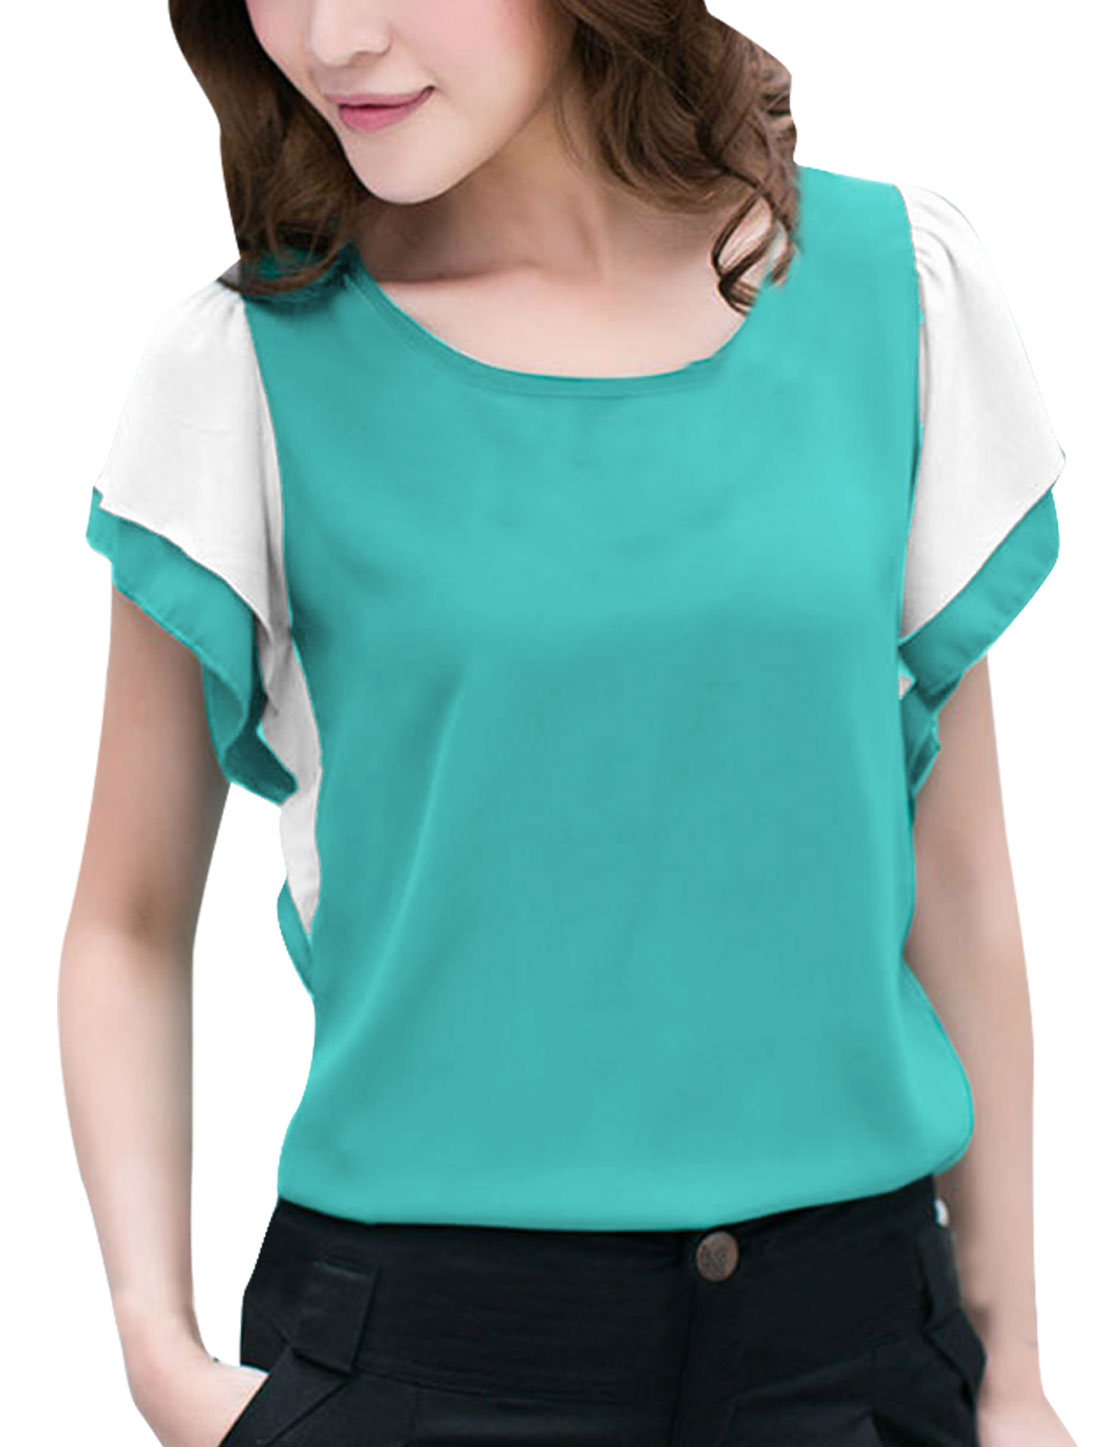 Ladies New Fashion Round Neck Short Tiered Ruffles Sleeve Aqua Color Blouse S